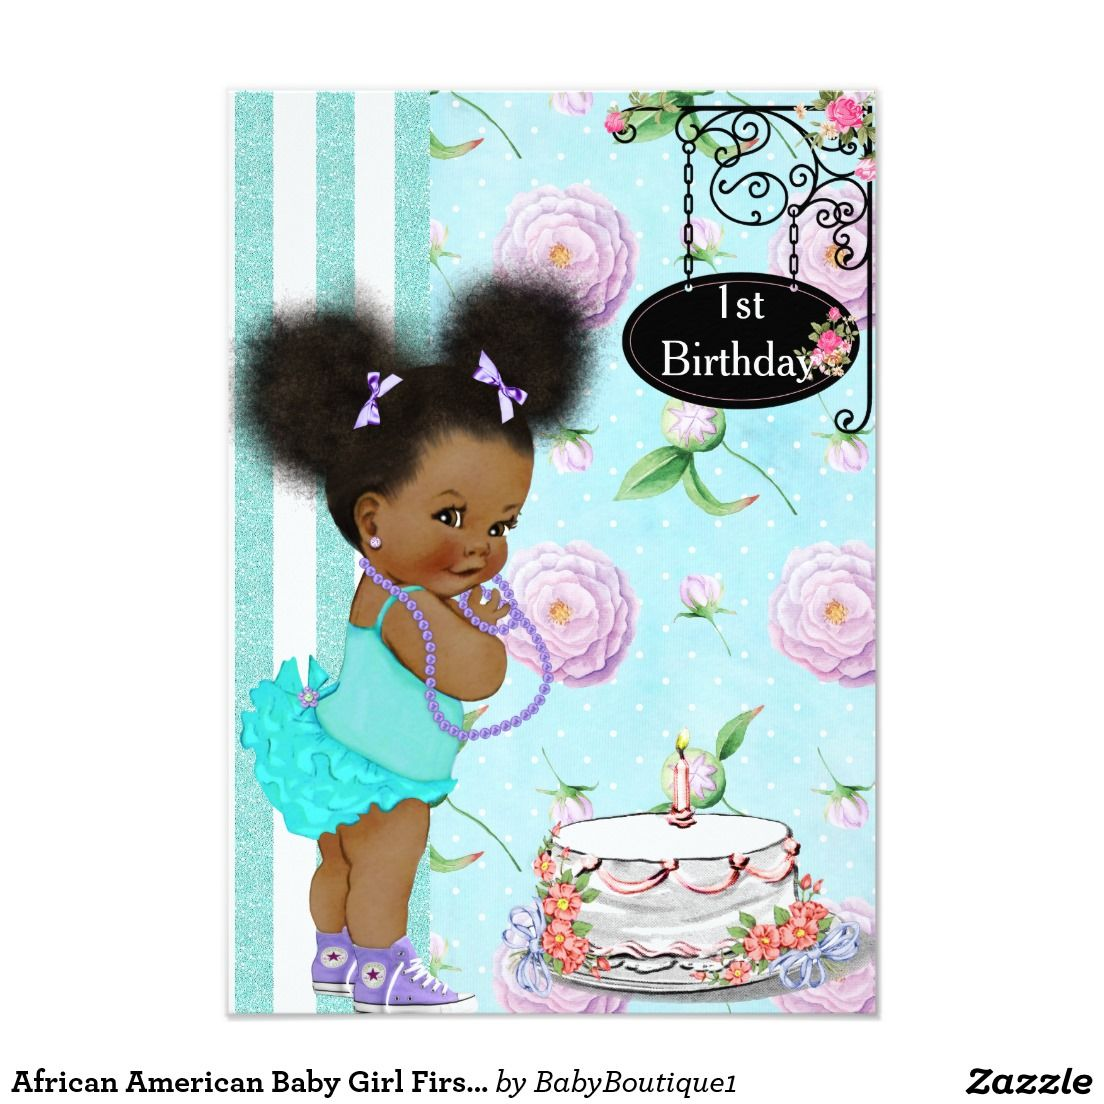 African American Baby Girl First Birthday Party Card